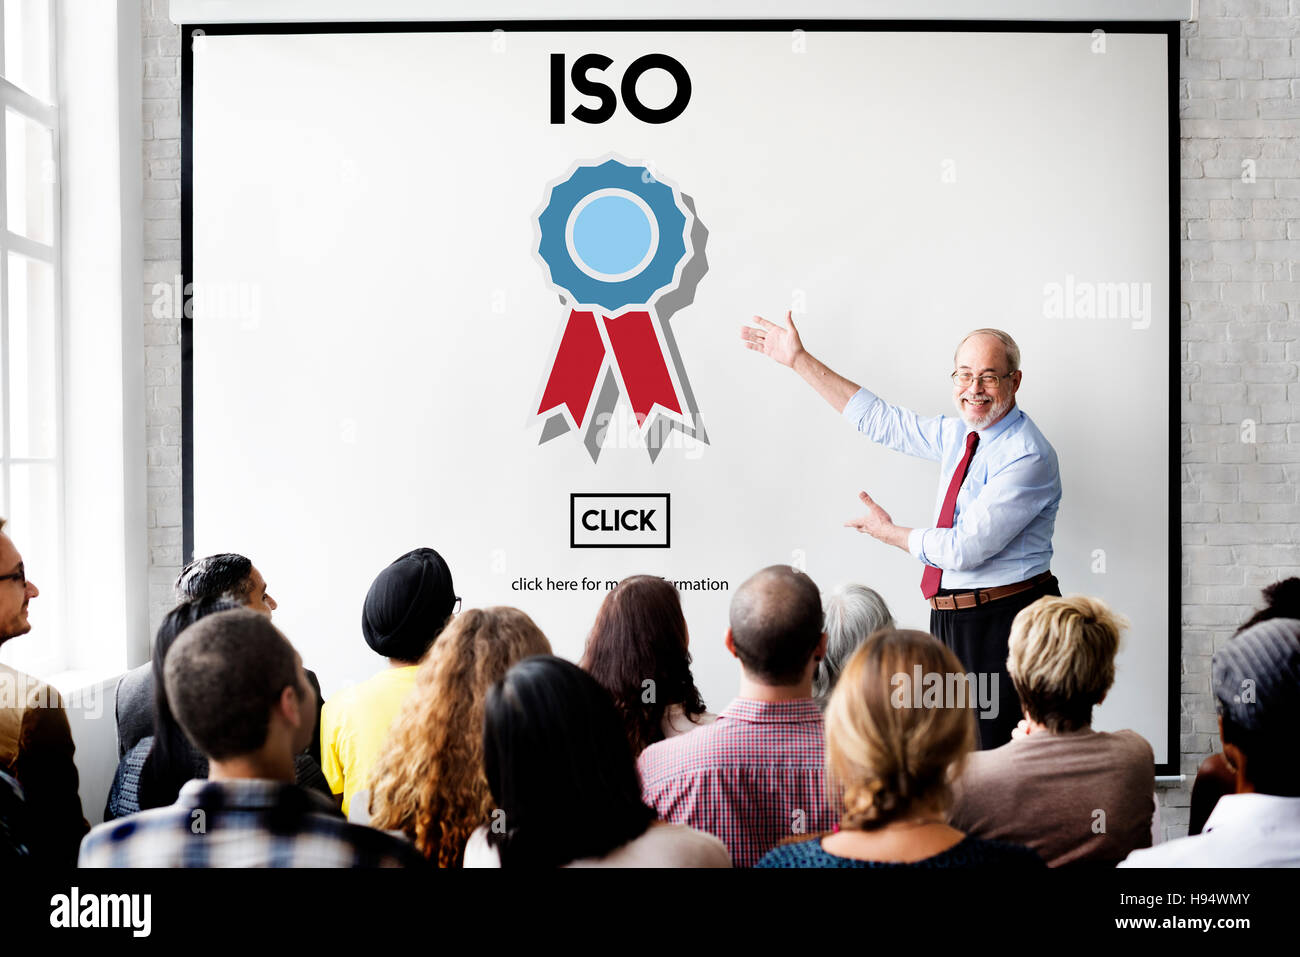 ISO International Standards Organization Quality Concept - Stock Image